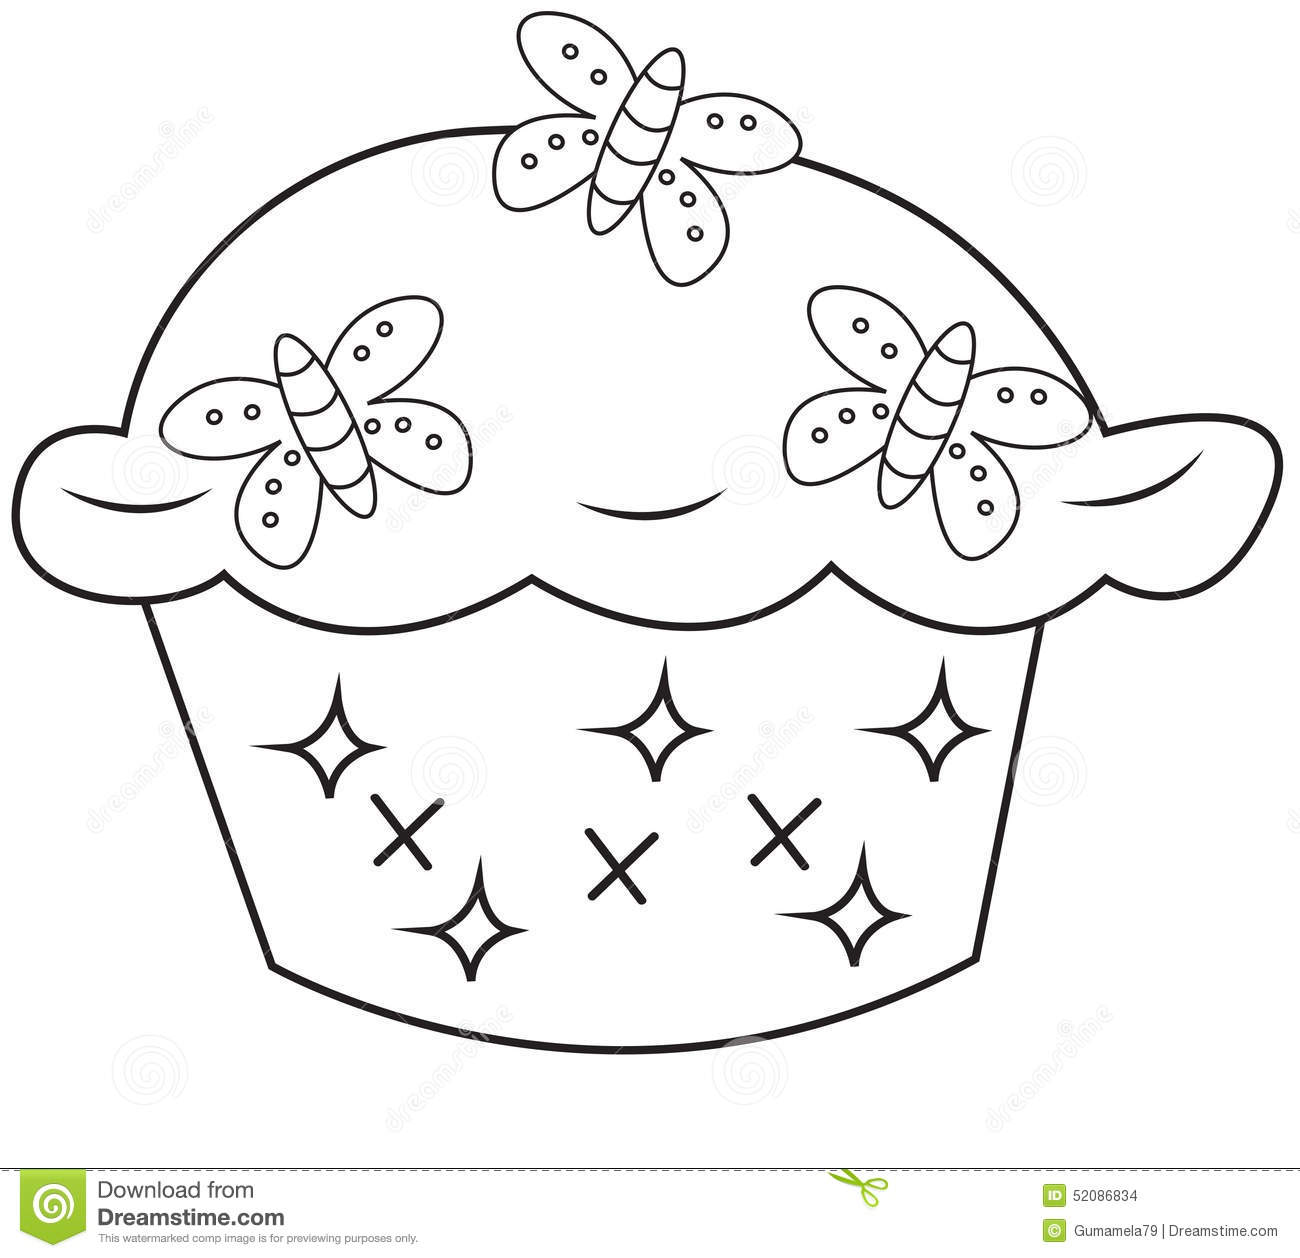 Cupcake coloring page stock illustration. Illustration of